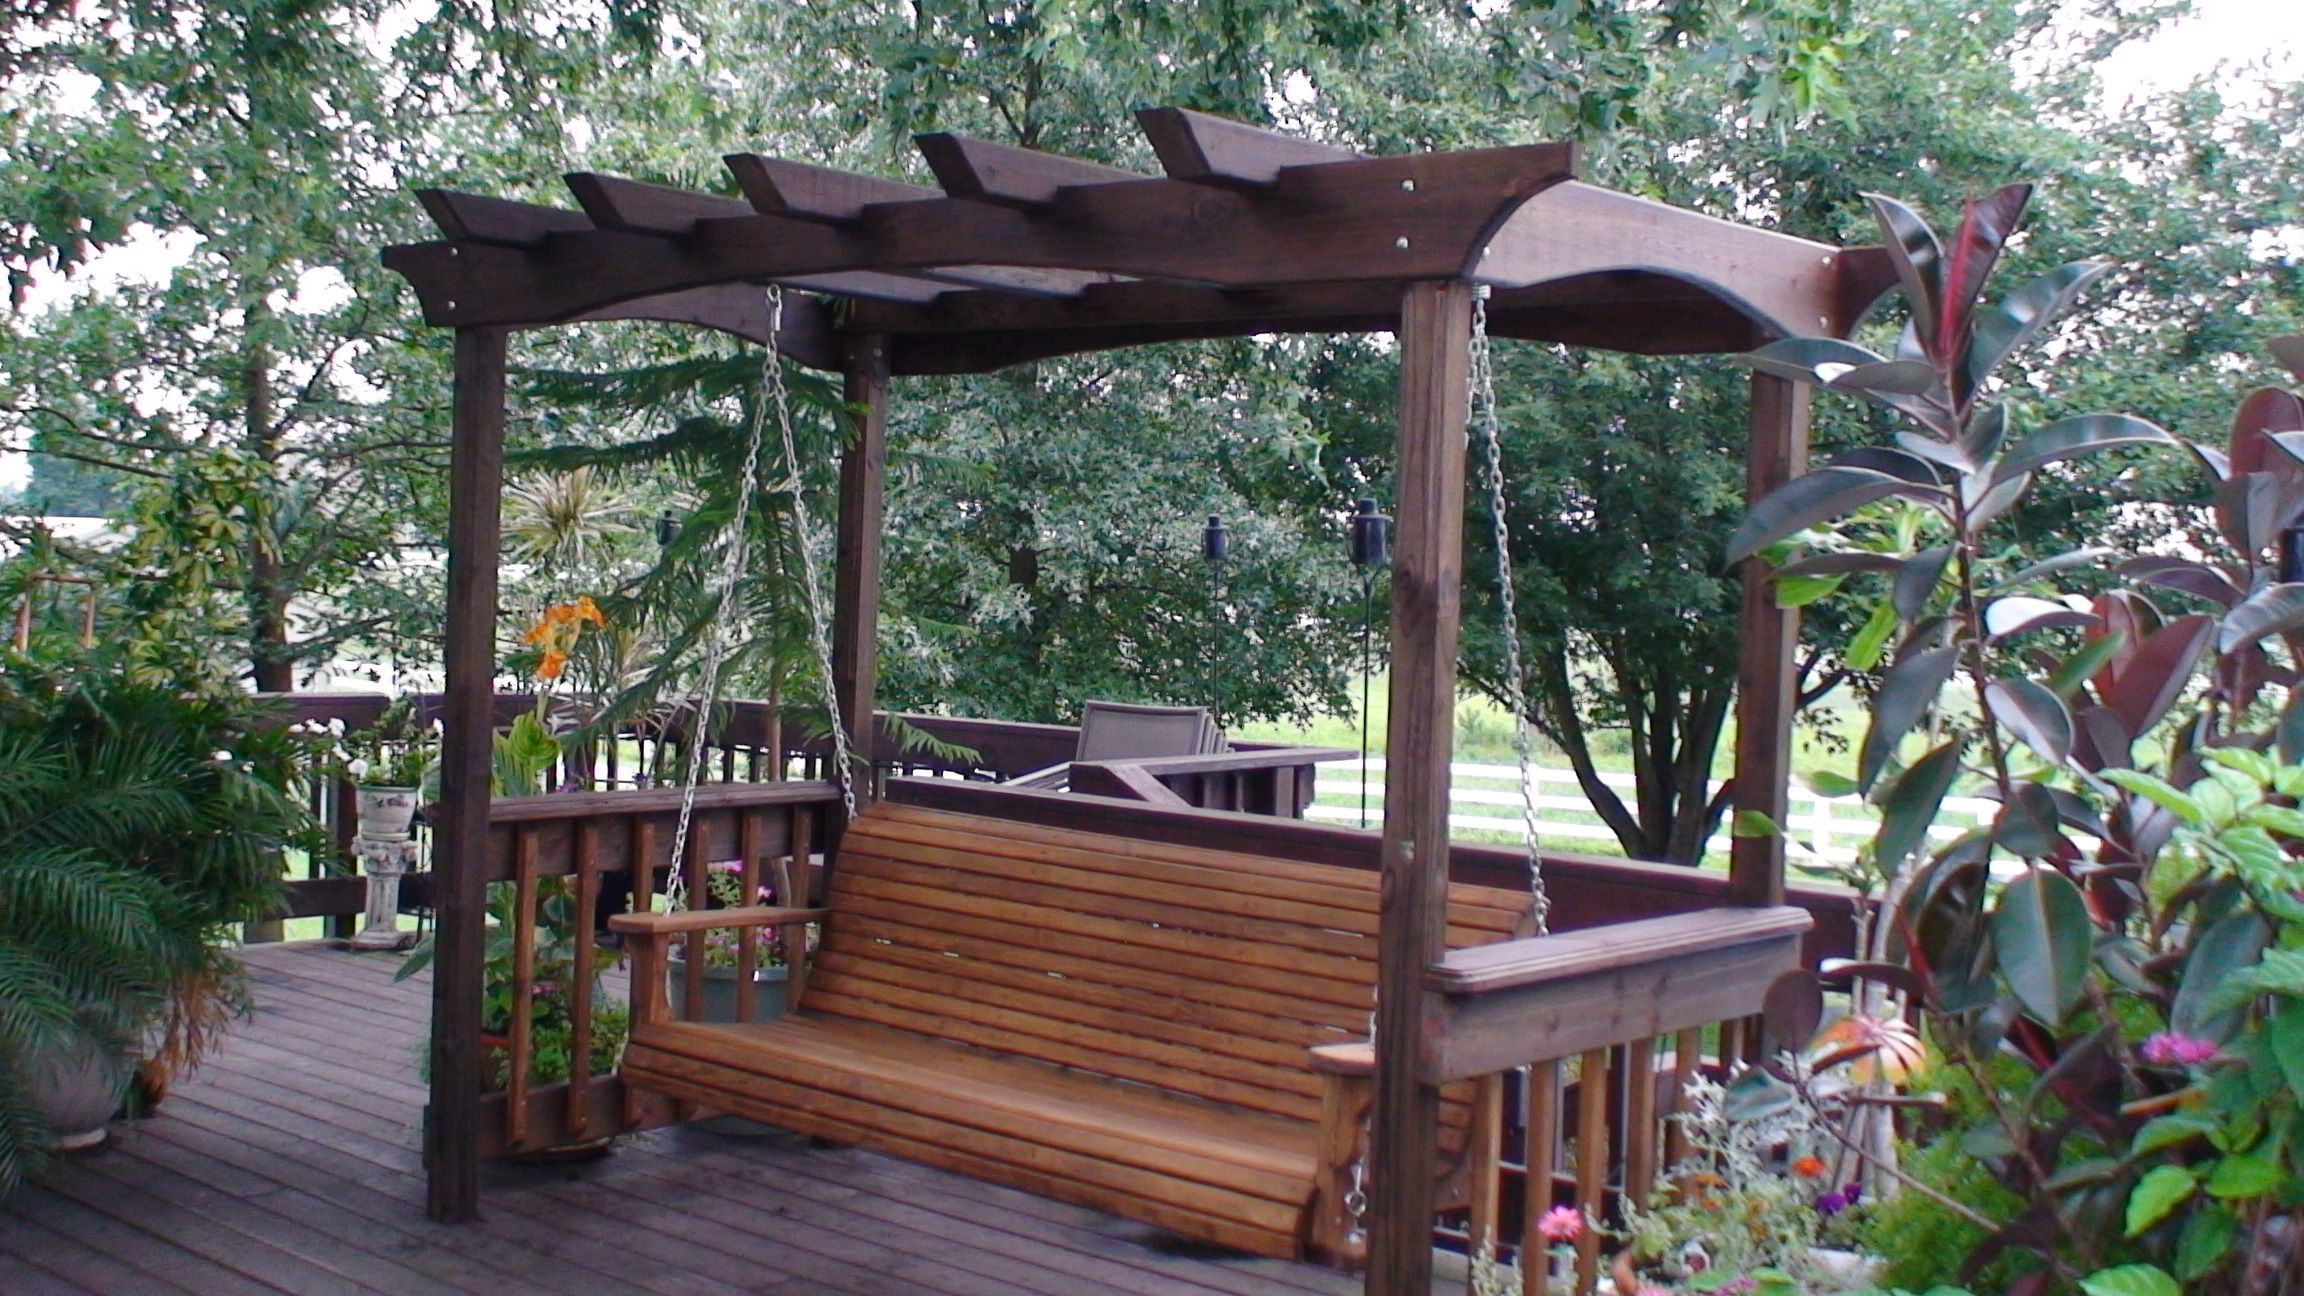 Corrupt Wooden Porch Swings And Porch Swing Stands Intended For Pergola Porch Swings With Stand (View 5 of 26)